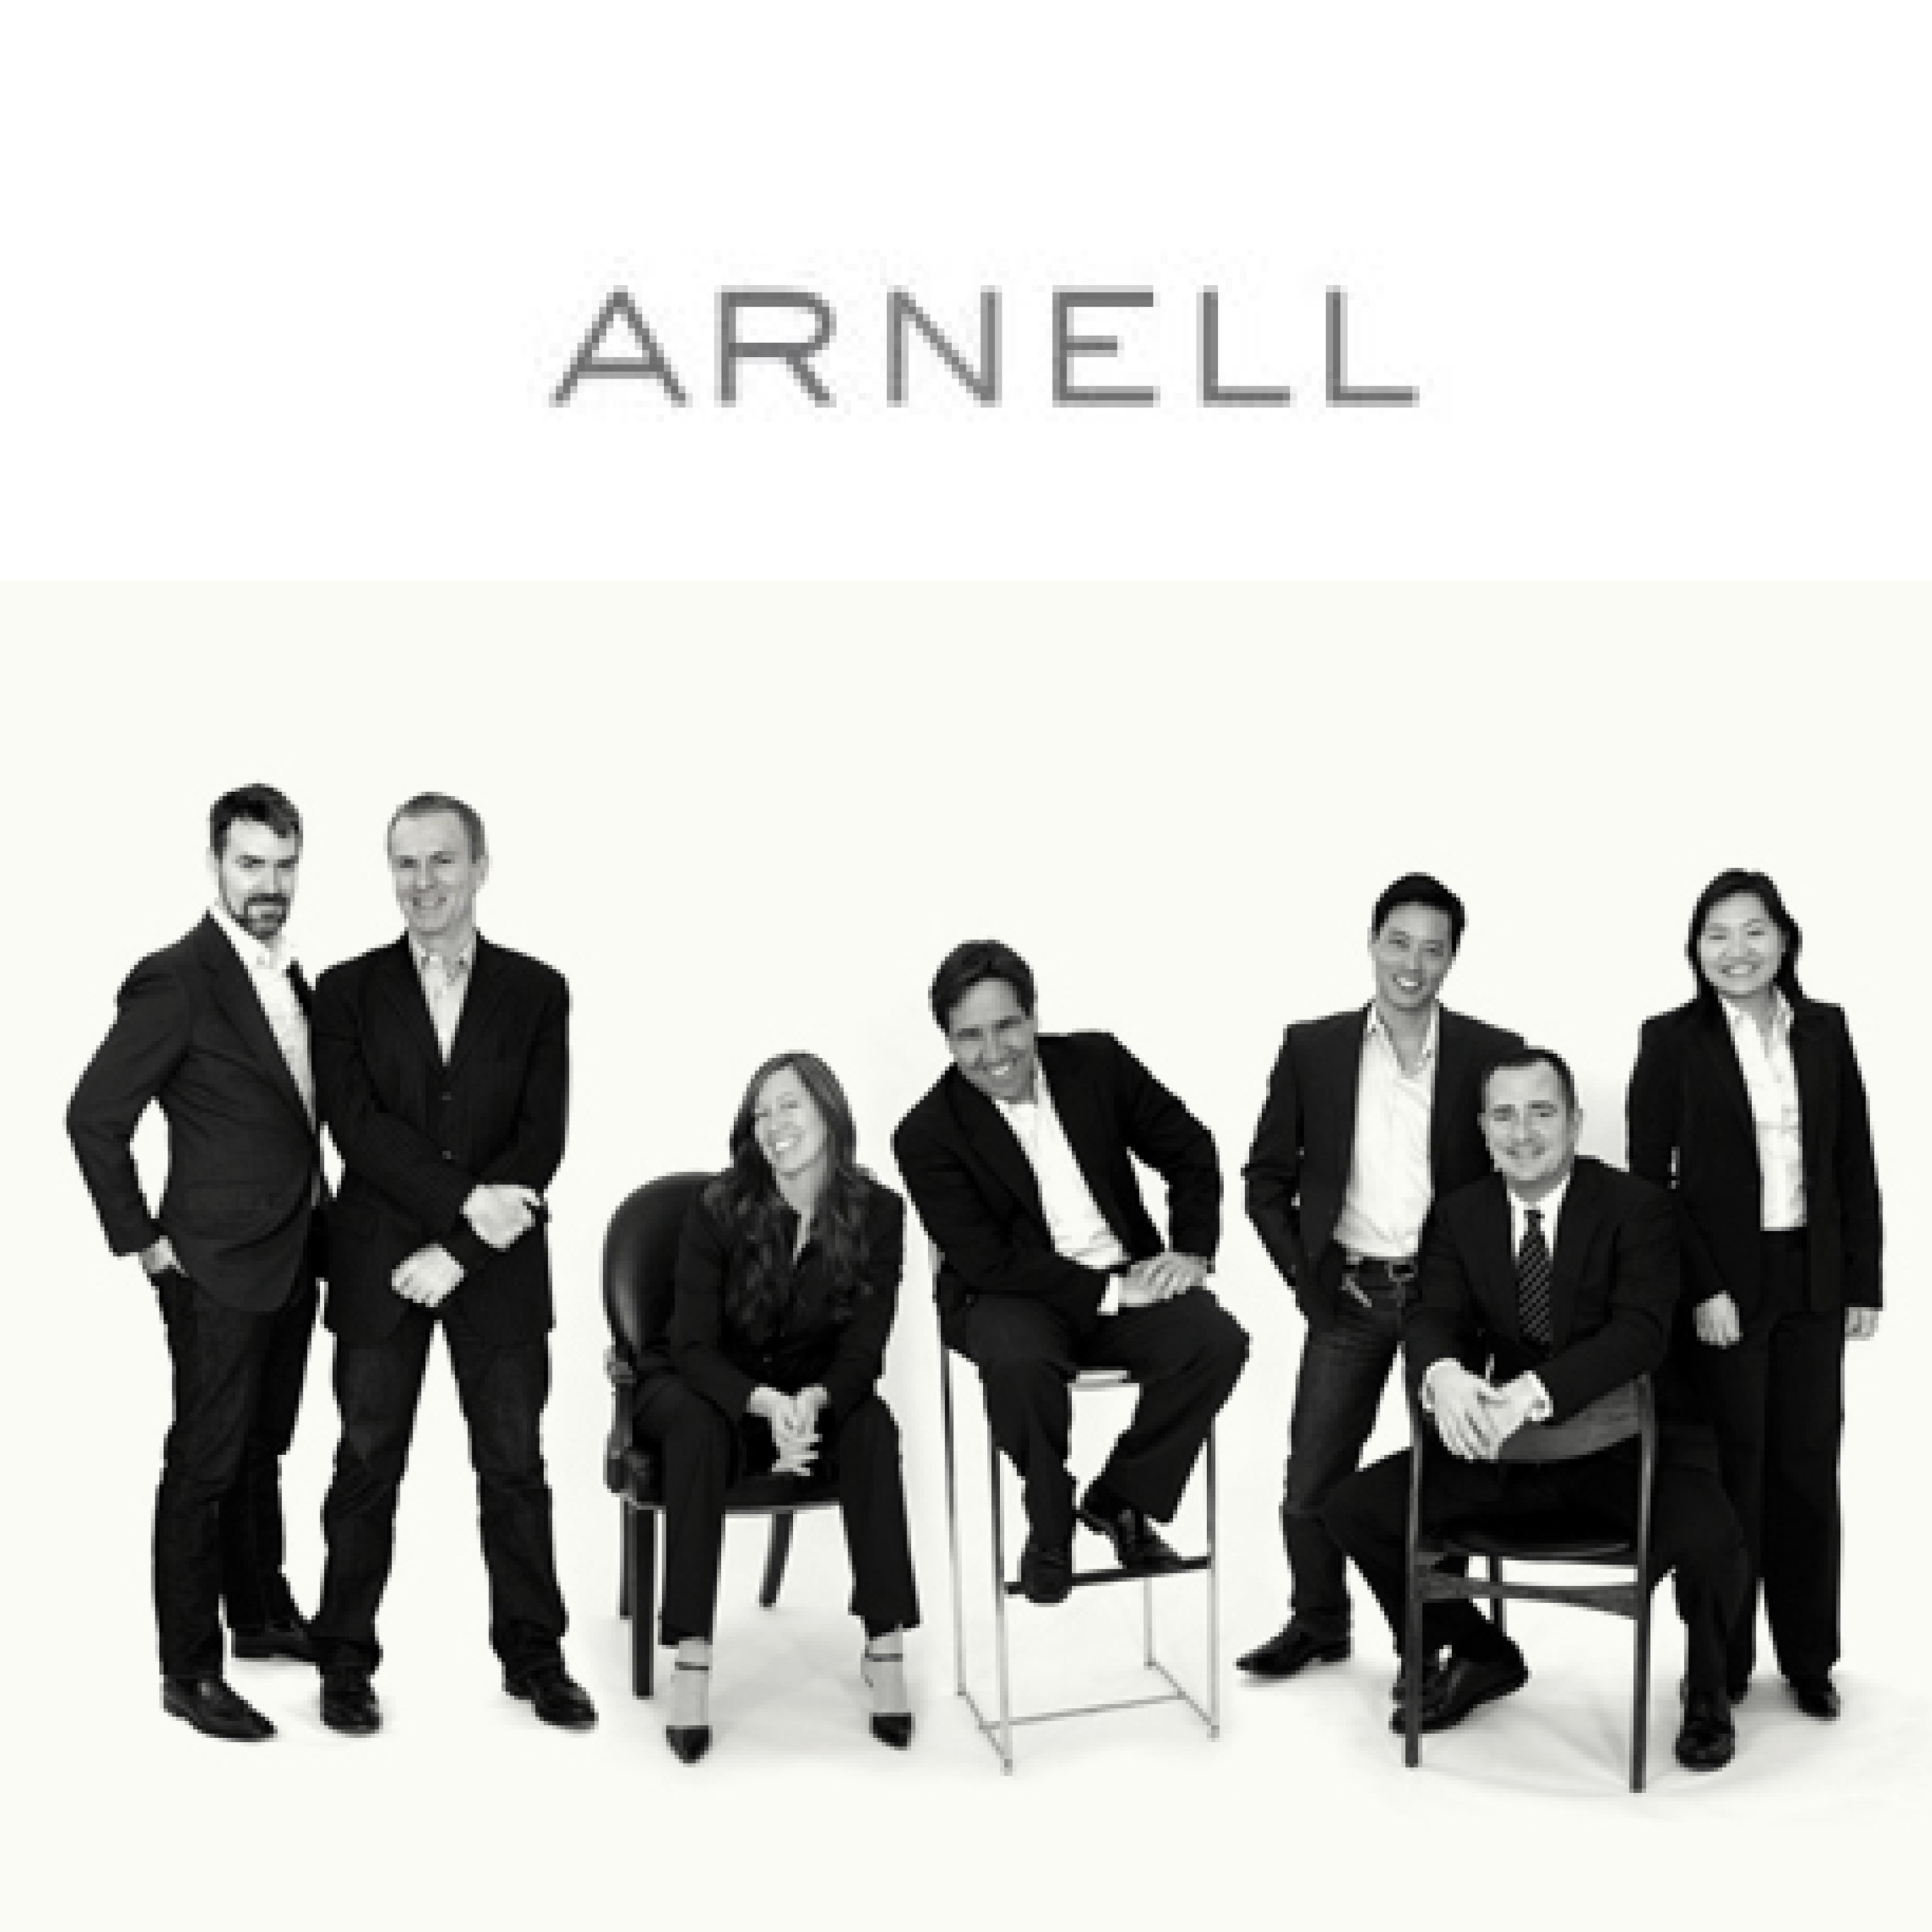 Sarah Arnell, co-founder + Chief Strategic Officer of Arnell Group, is seated third from left.